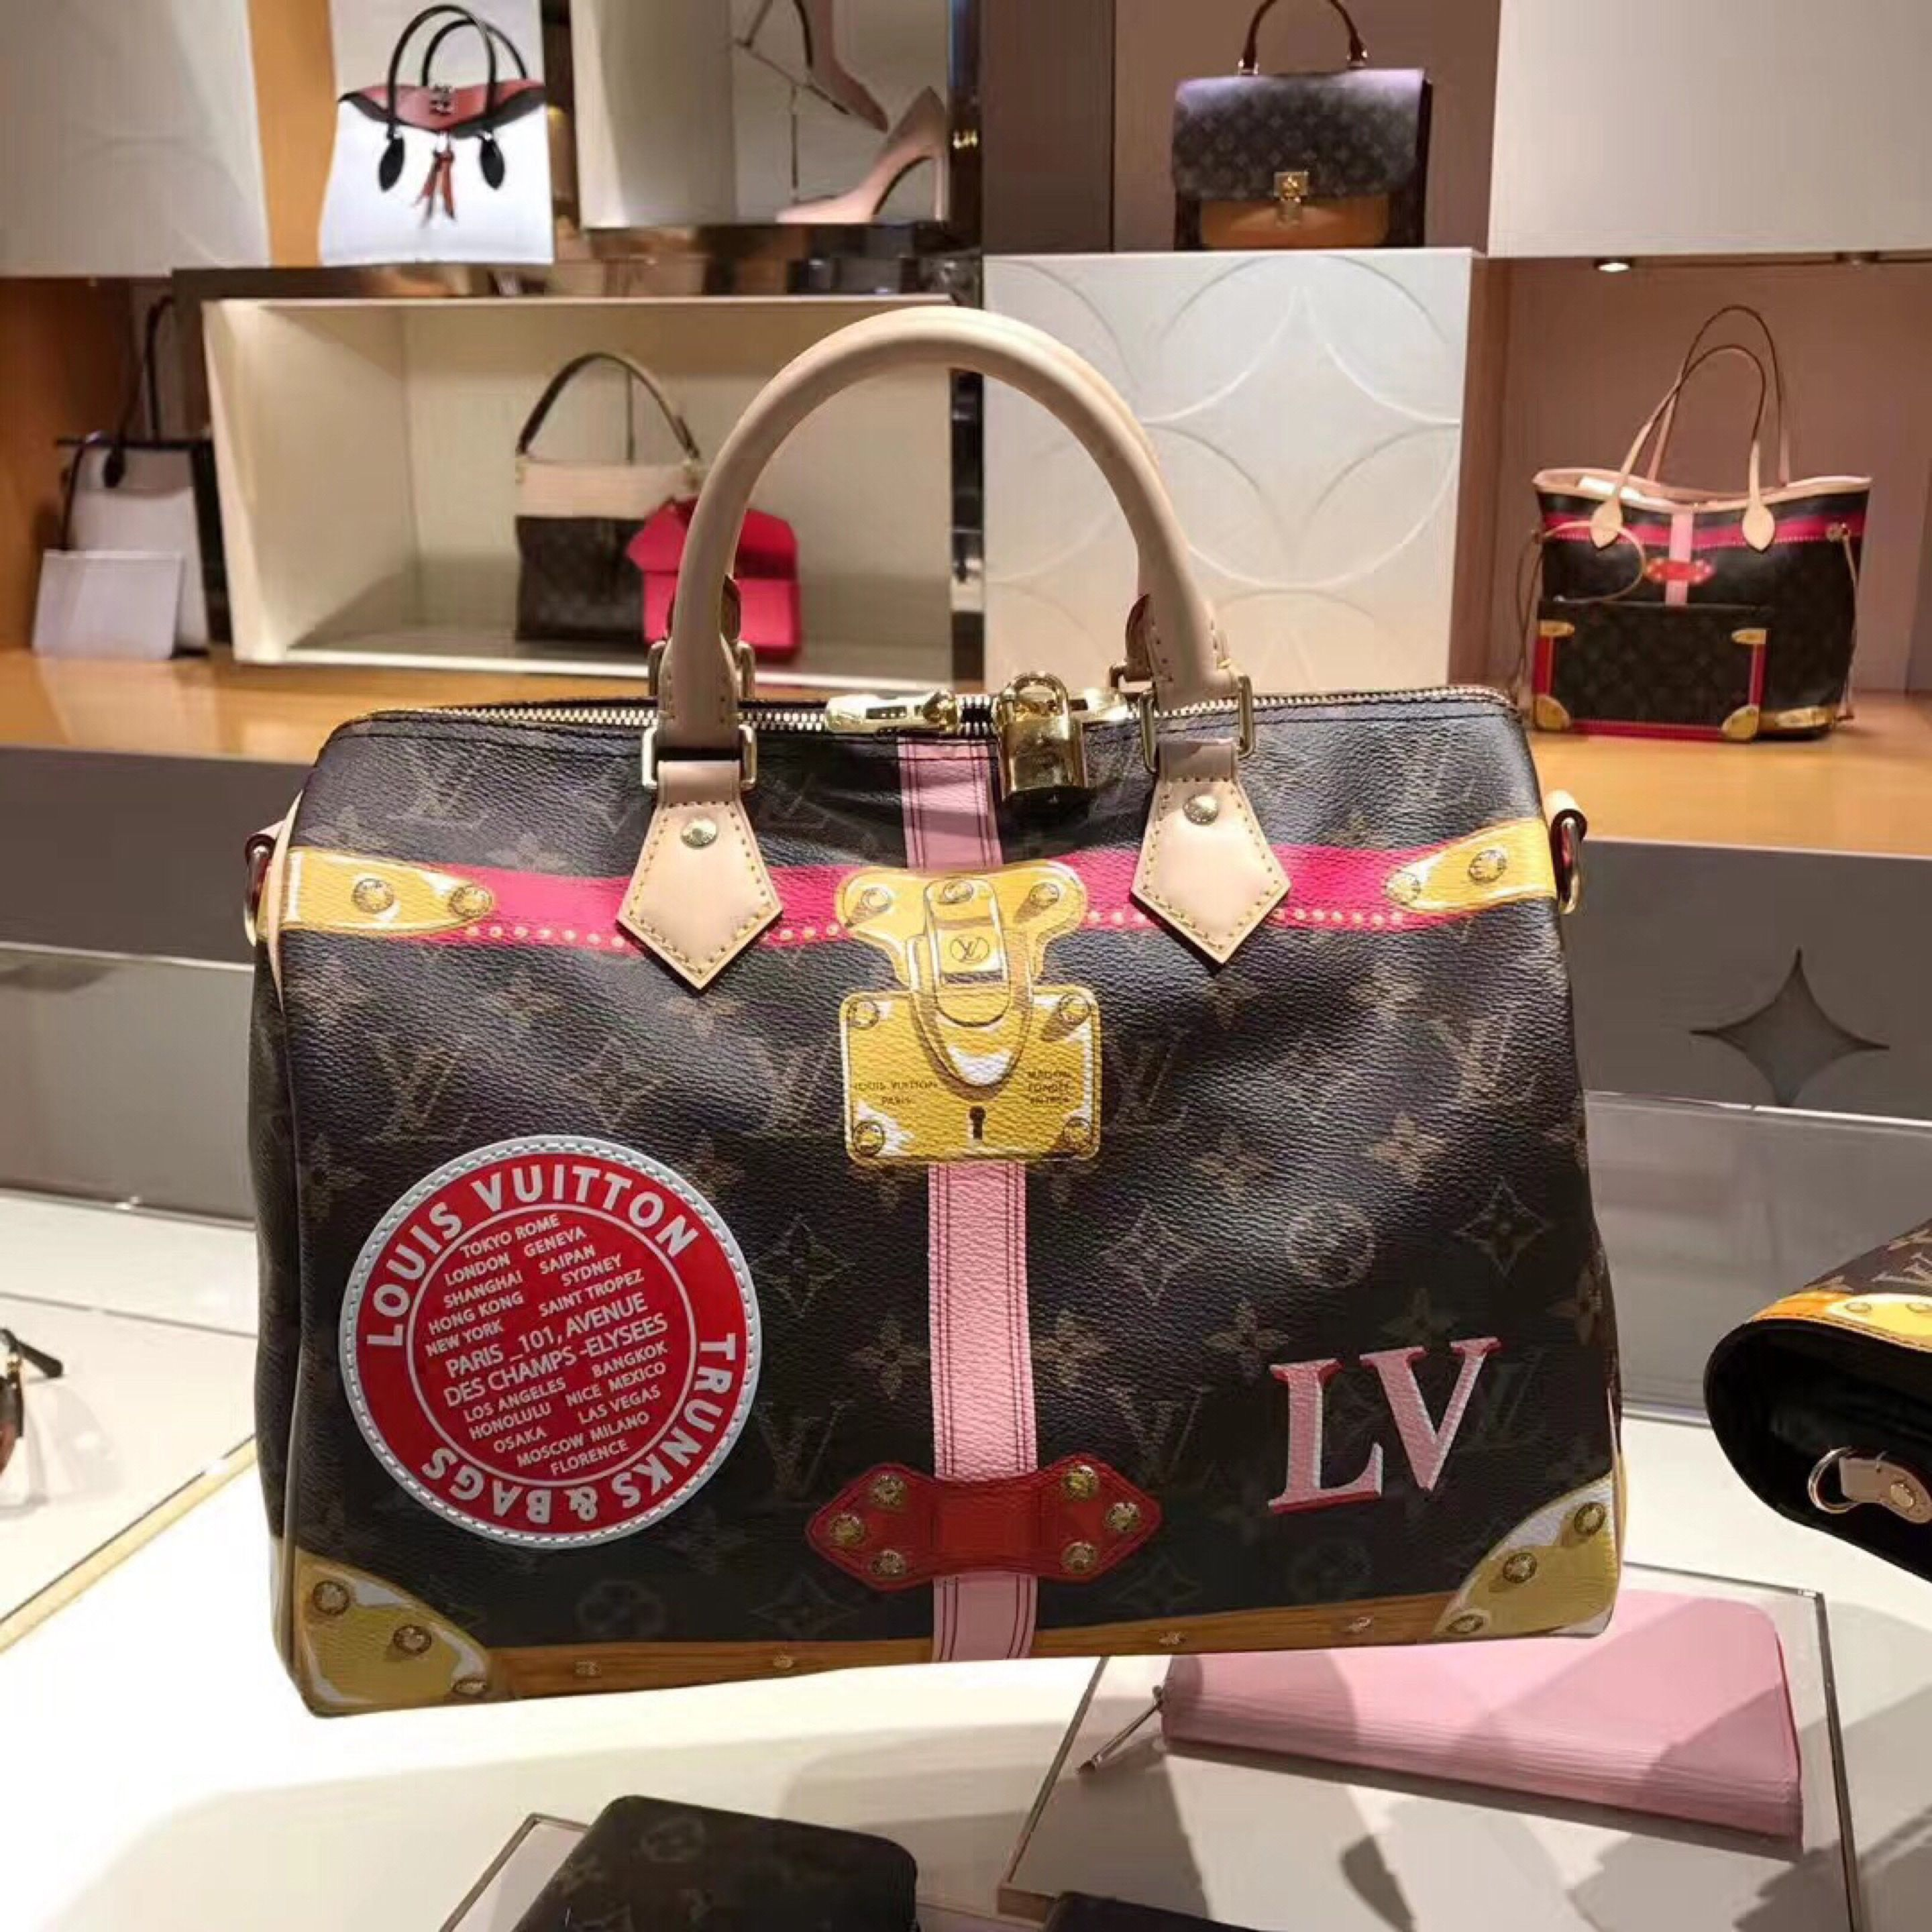 5ba1c1a0ff87 Louis Vuitton Print Trunk Speedy 30 City Bag M43628